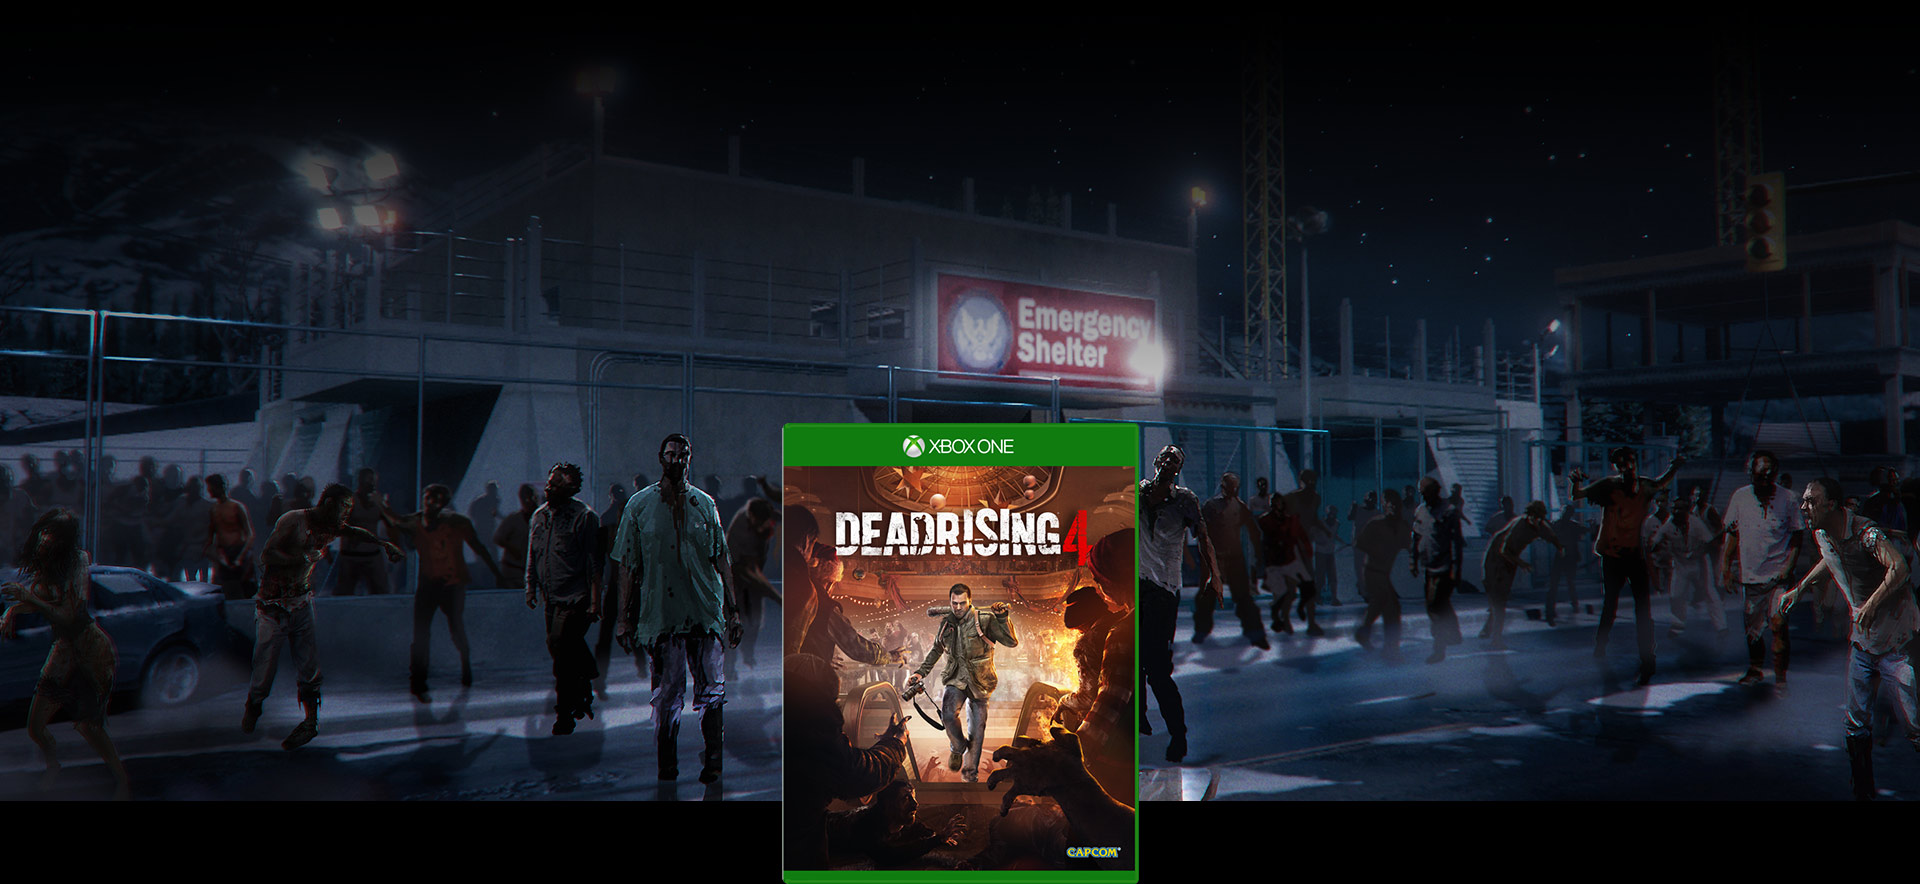 Map Of Usa Zombies%0A Dead Rising   box shot in front of a Horde of zombies at night background